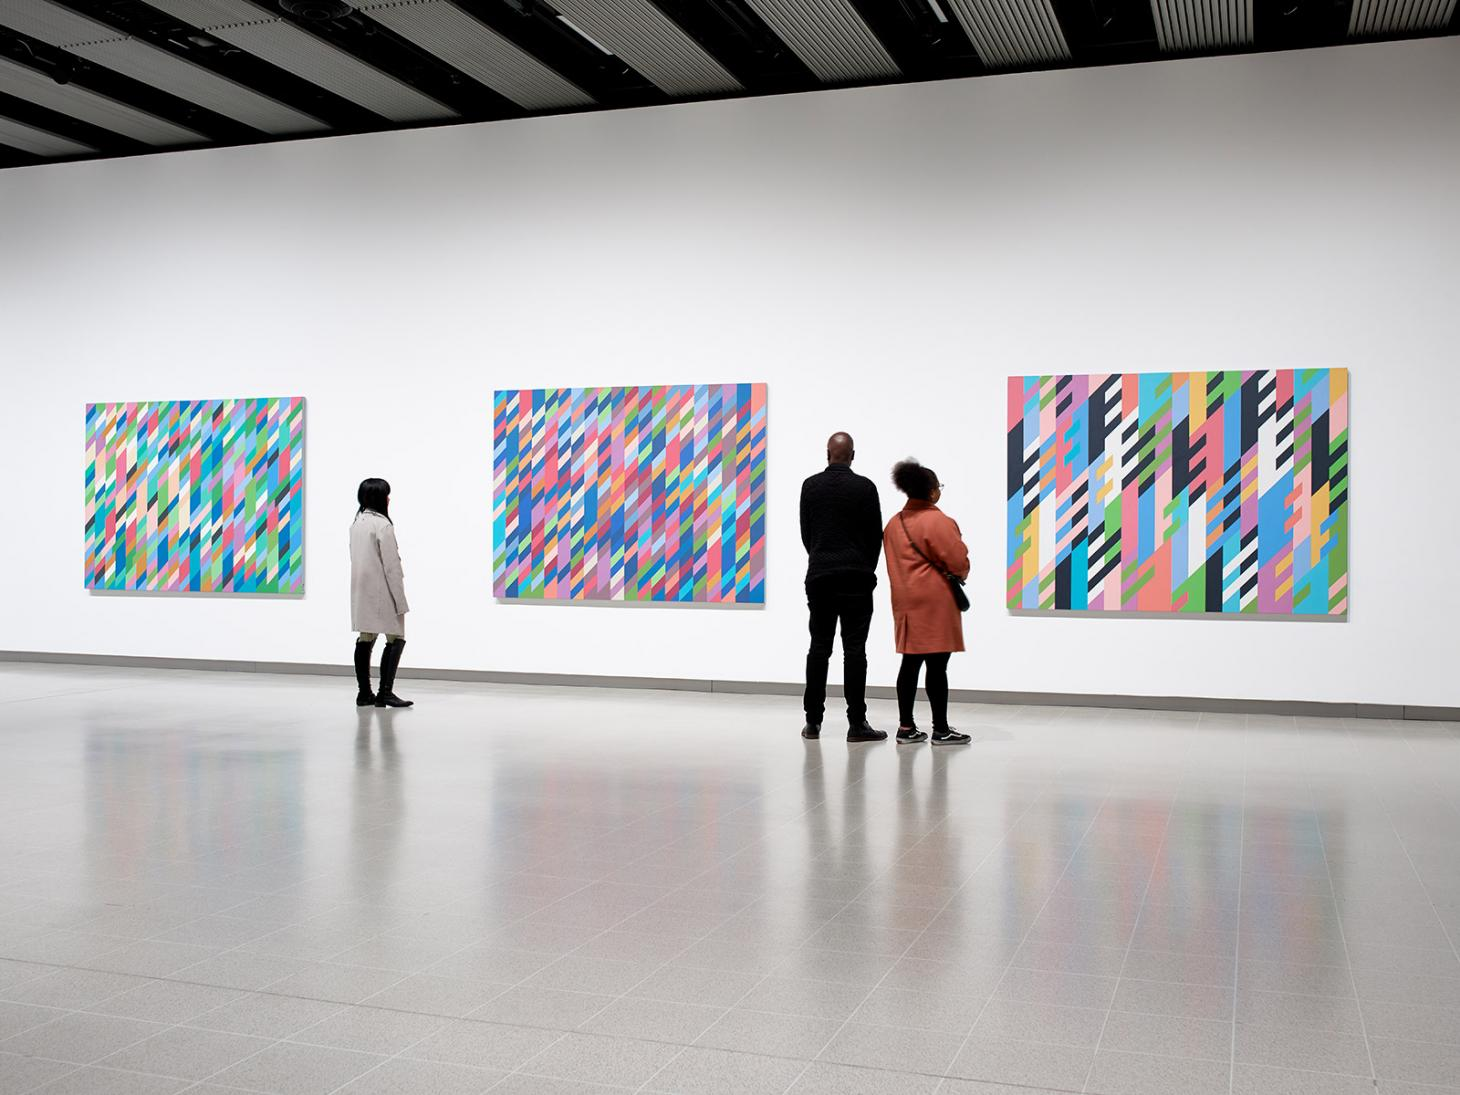 View of 'Bridget Riley' at the Hayward Gallery, London